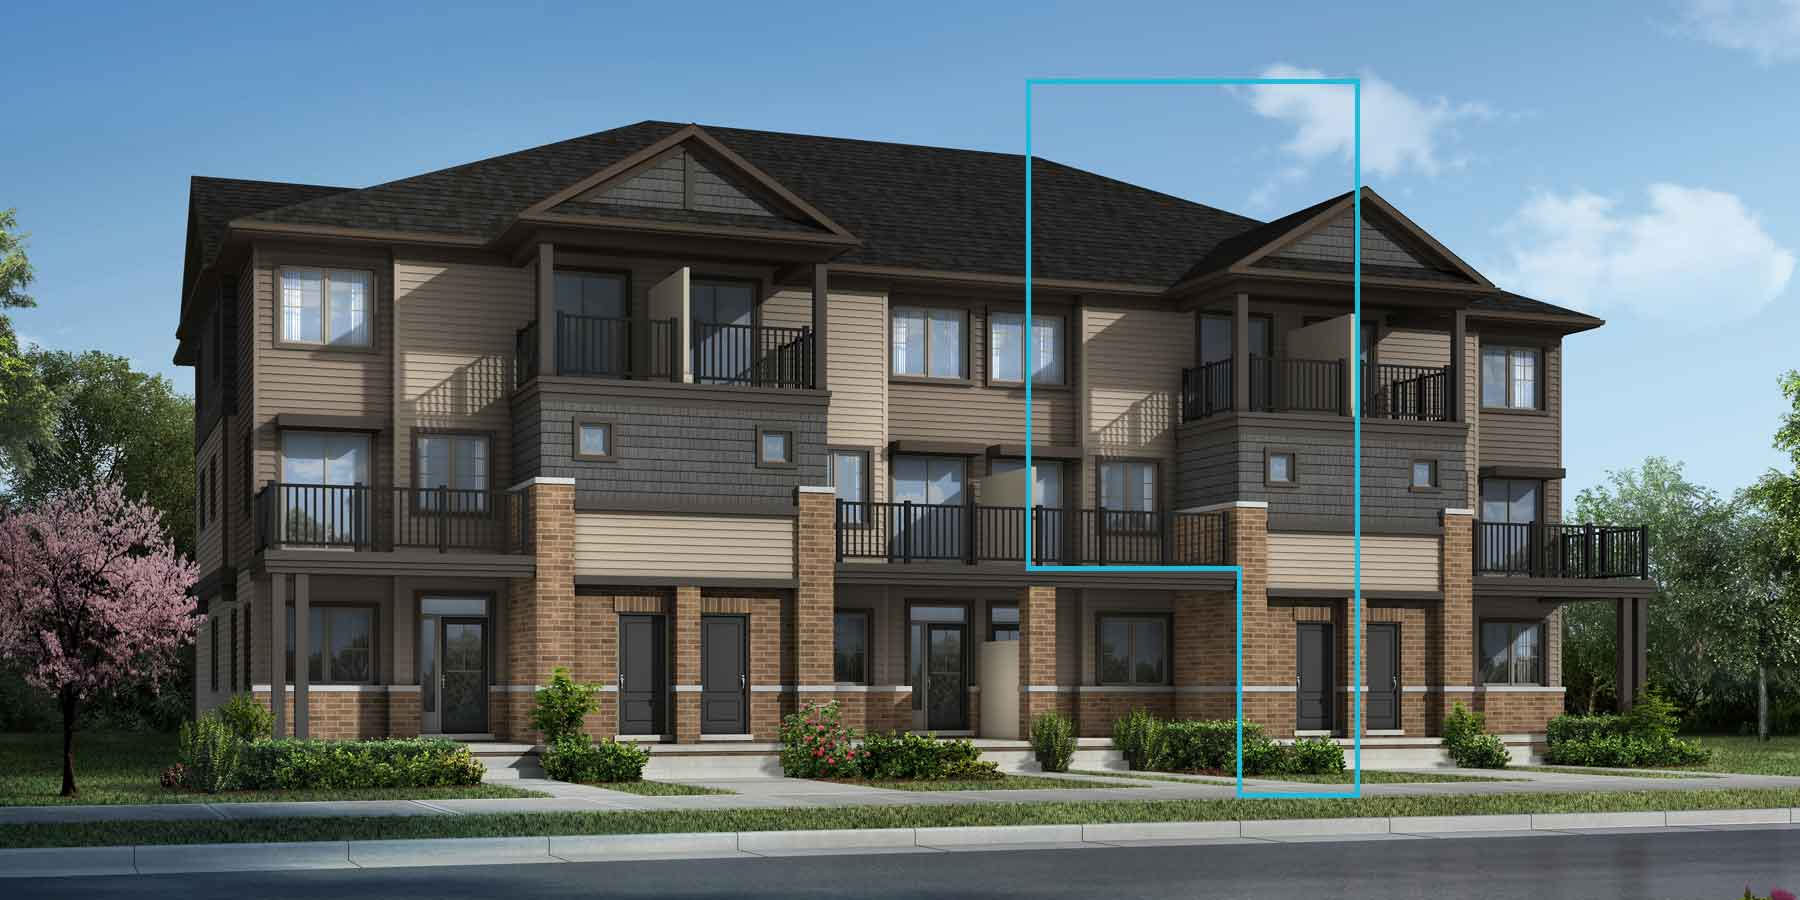 Buttercup Plan TownHomes at Promenade in Barrhaven Ontario by Mattamy Homes